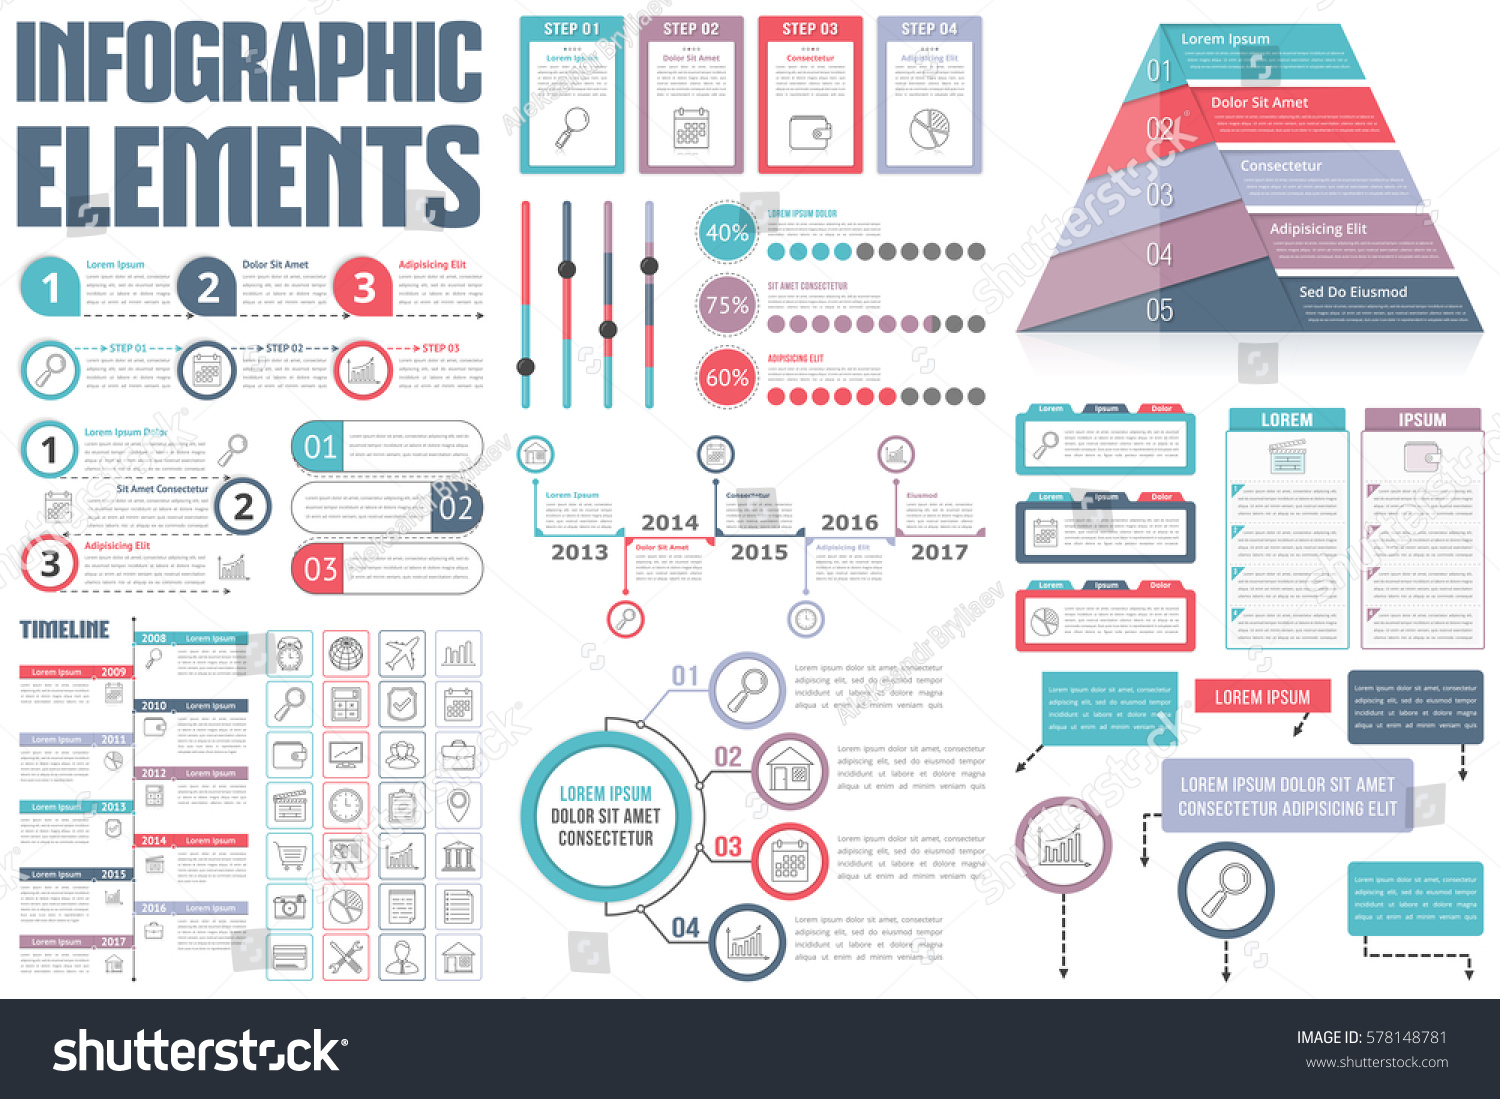 Infographic Elements Process Infographics Workflow Diagrams Stock Vector 578148781